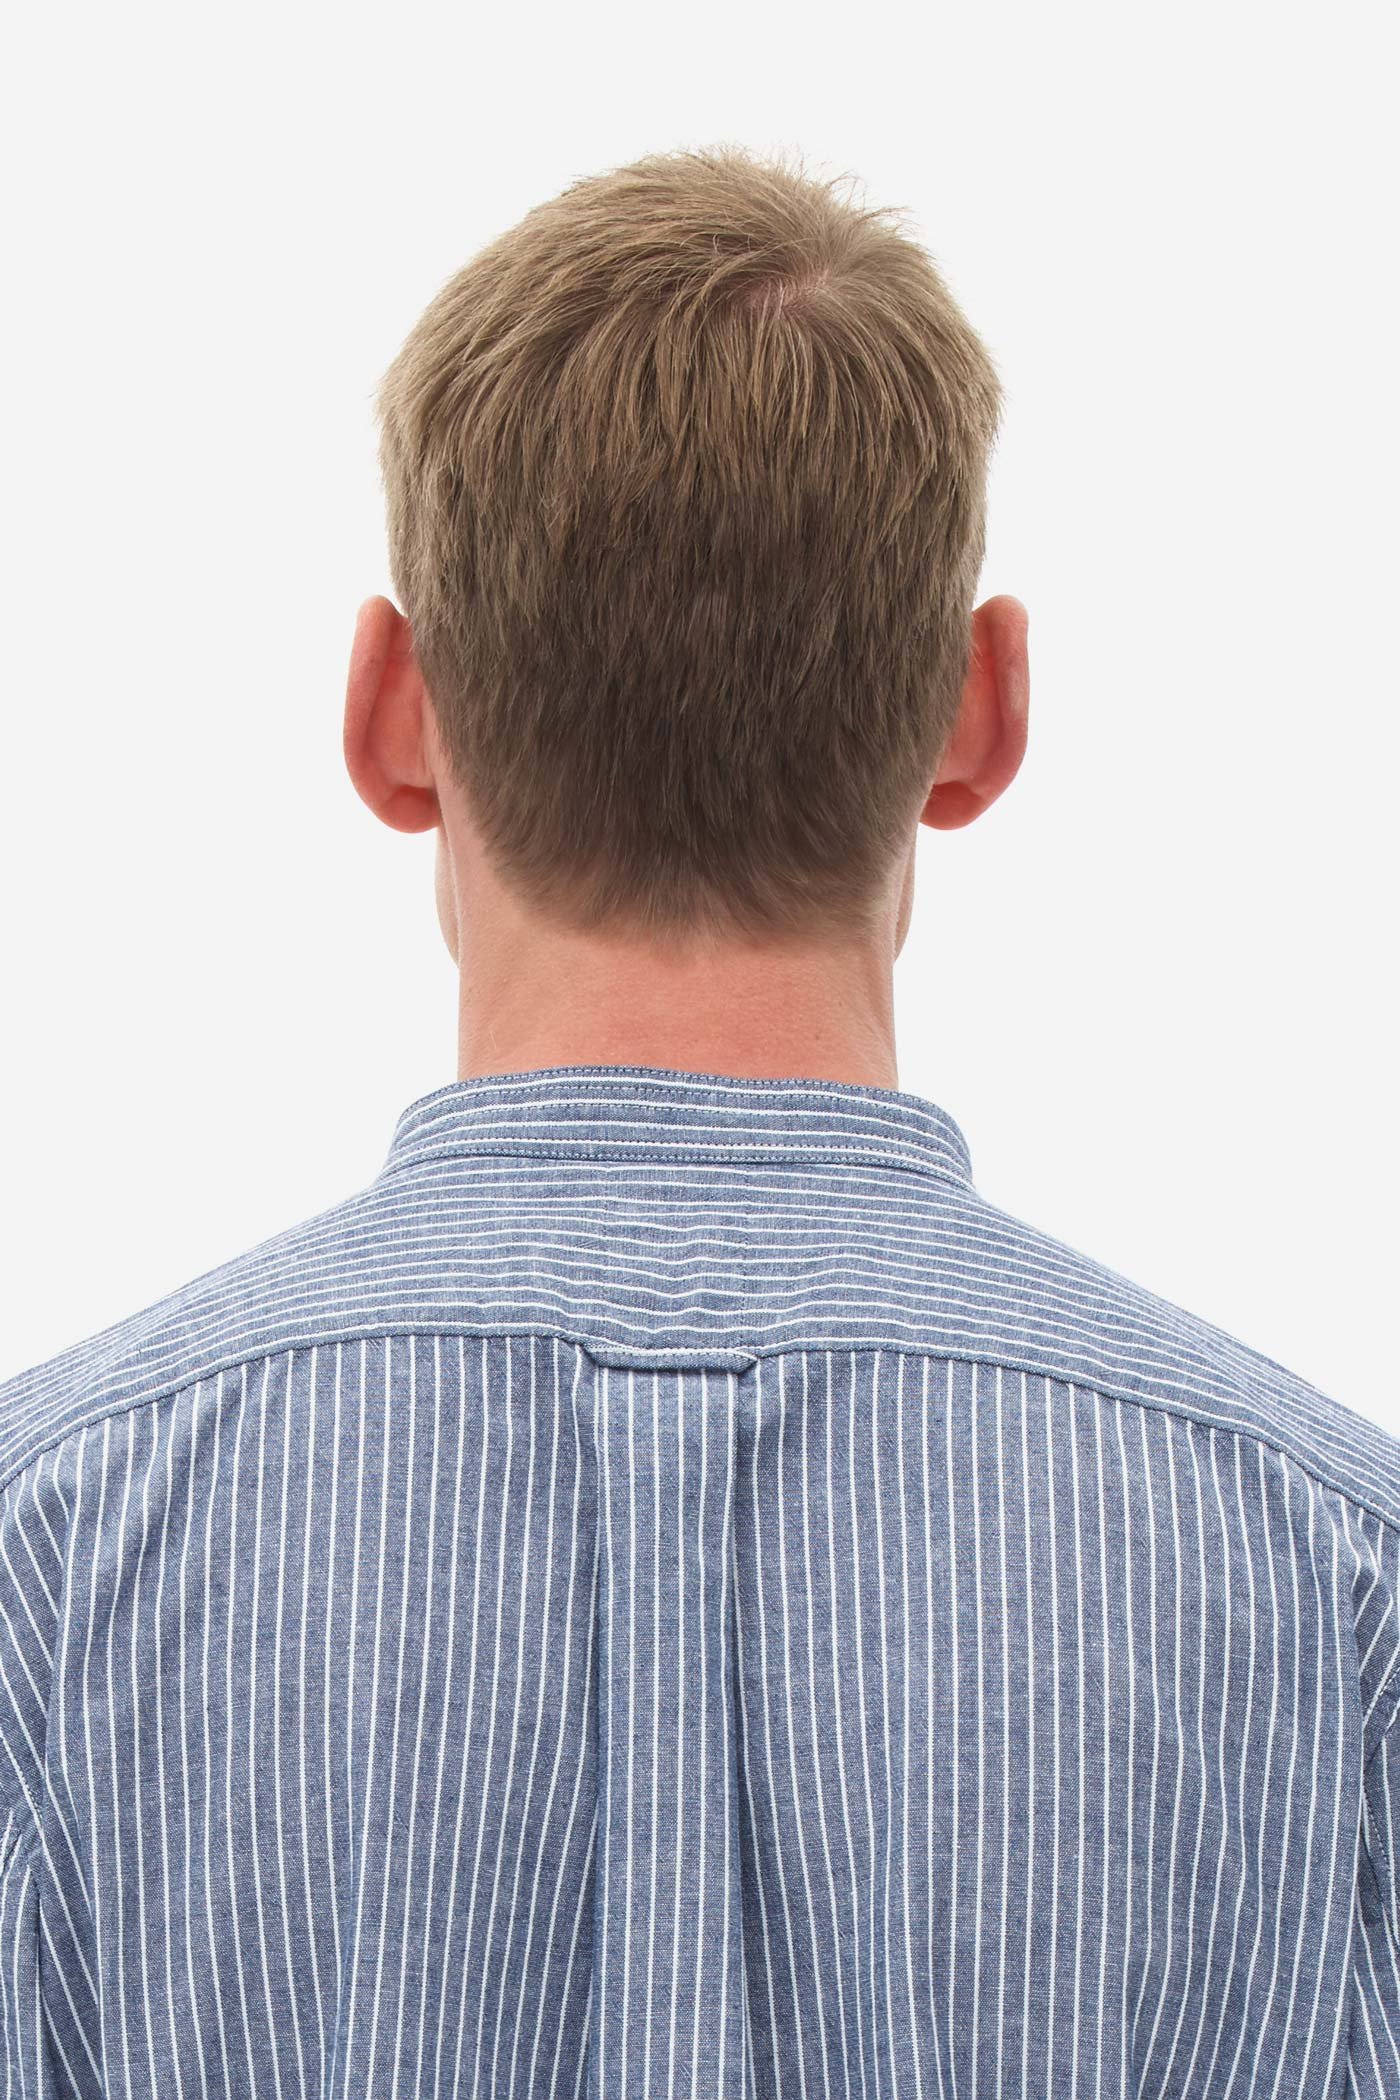 Chambray Stripe Shirt medival blue